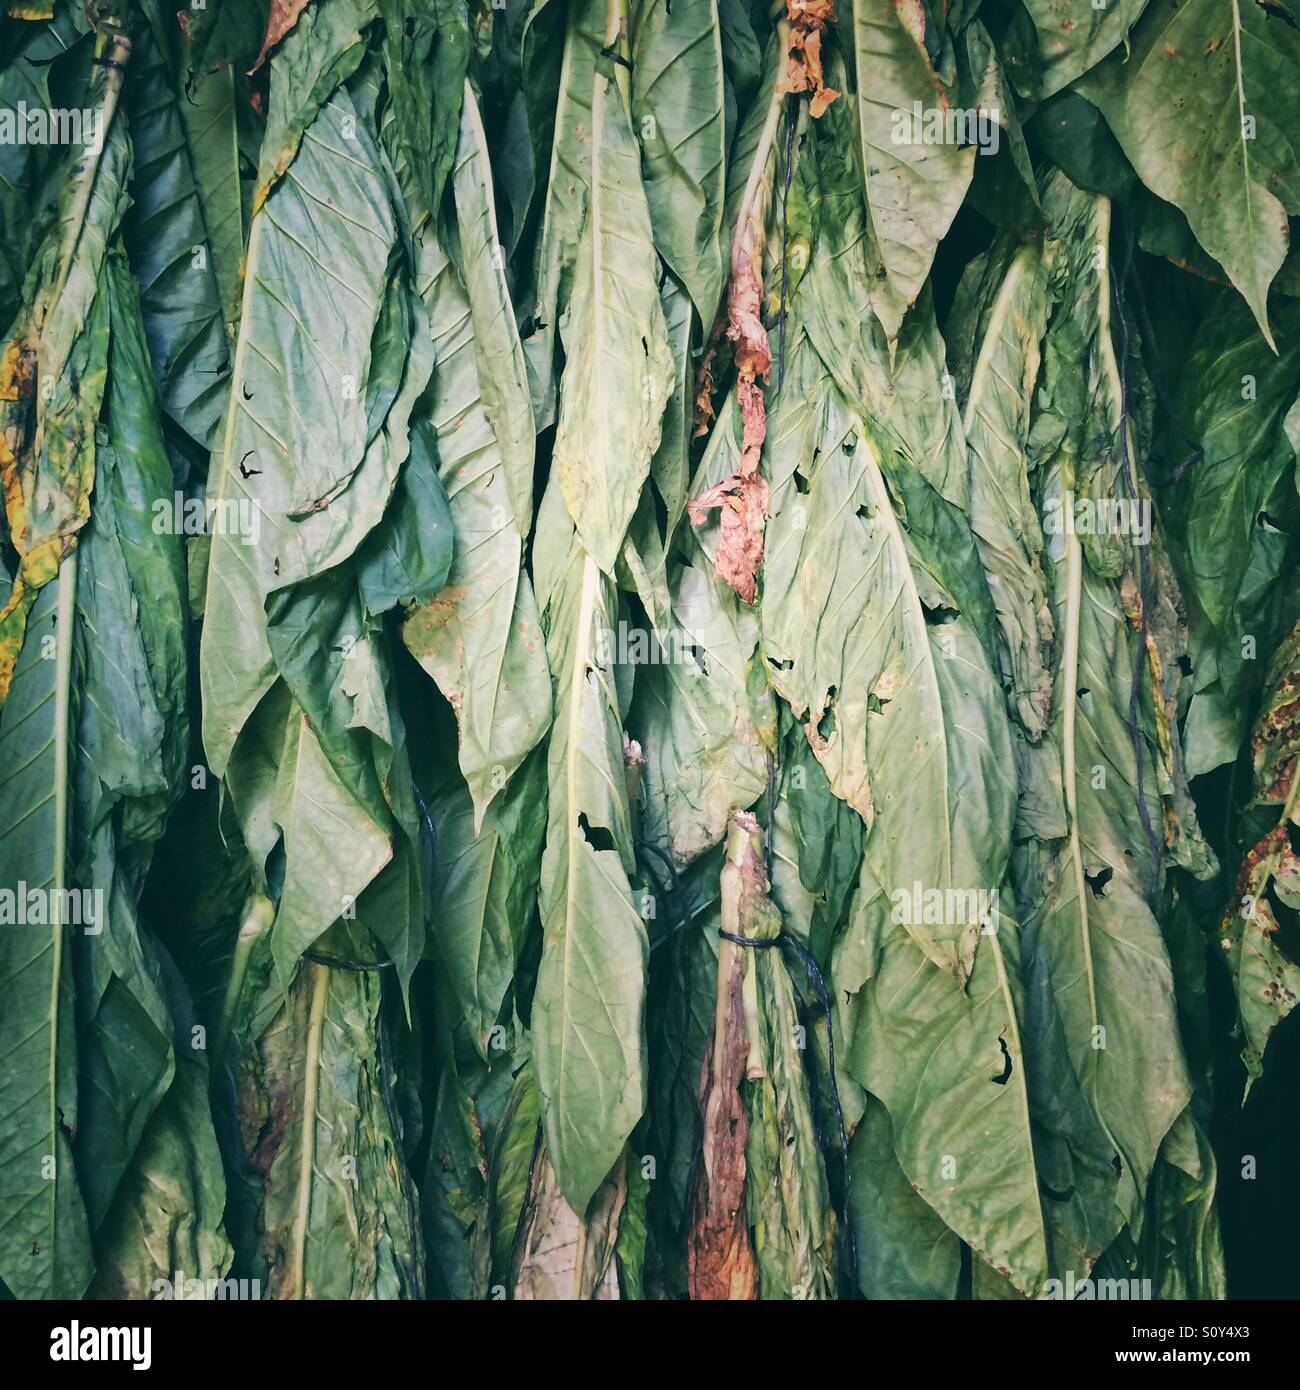 Tobacco leaves hung up and drying - Stock Image